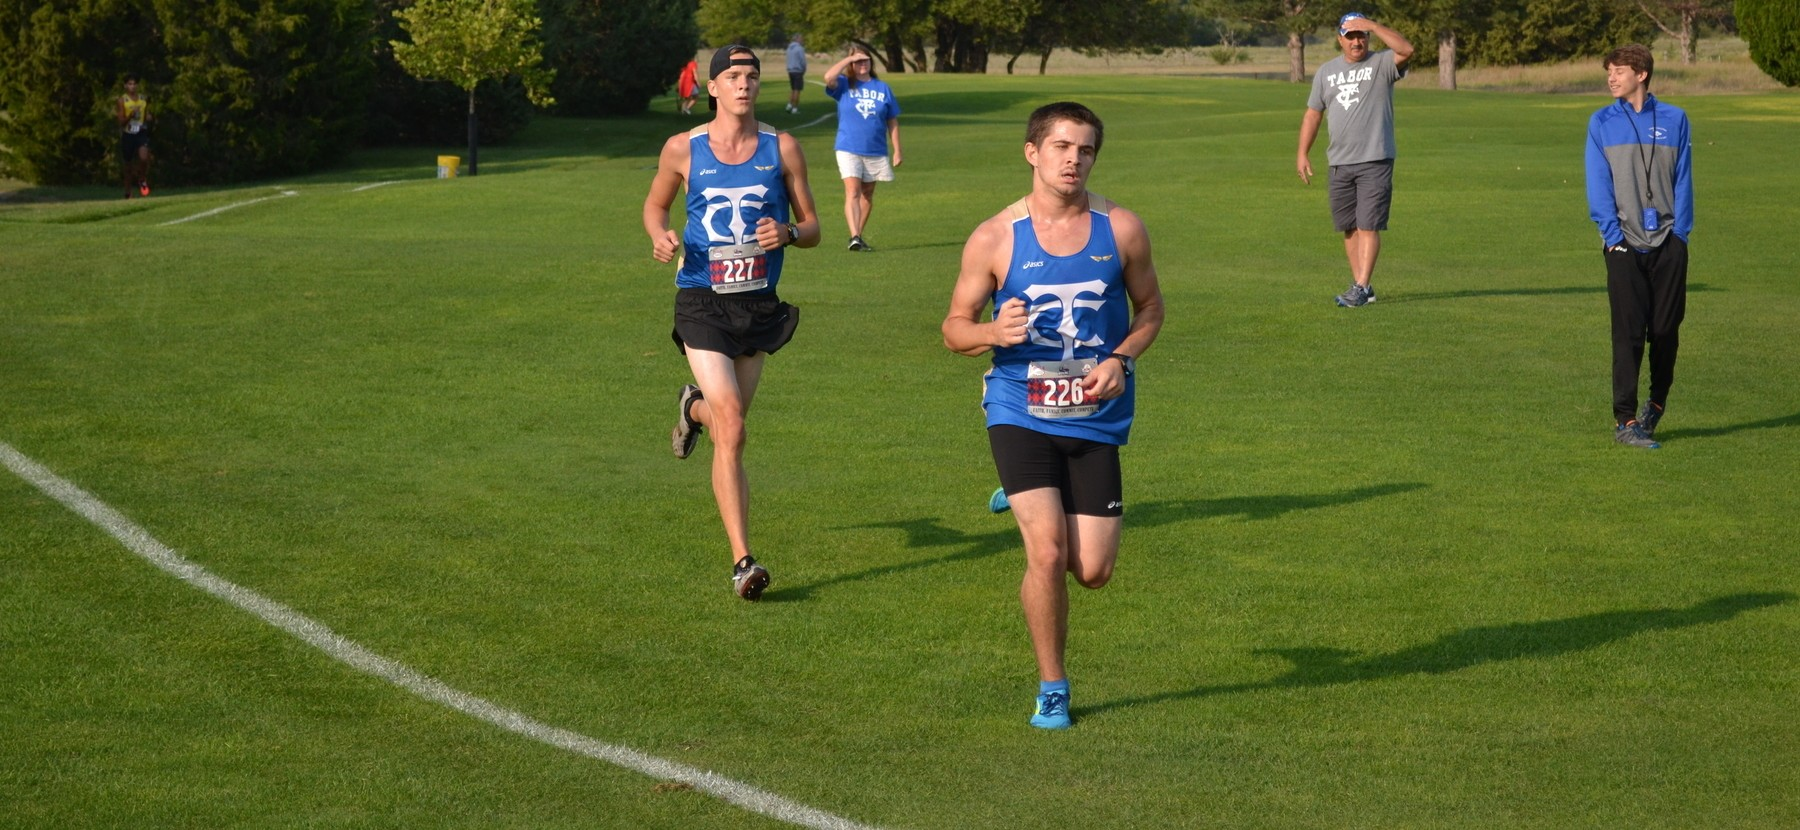 Hinerman & Ballou-Lyngstand Round out Bluejay Top 5